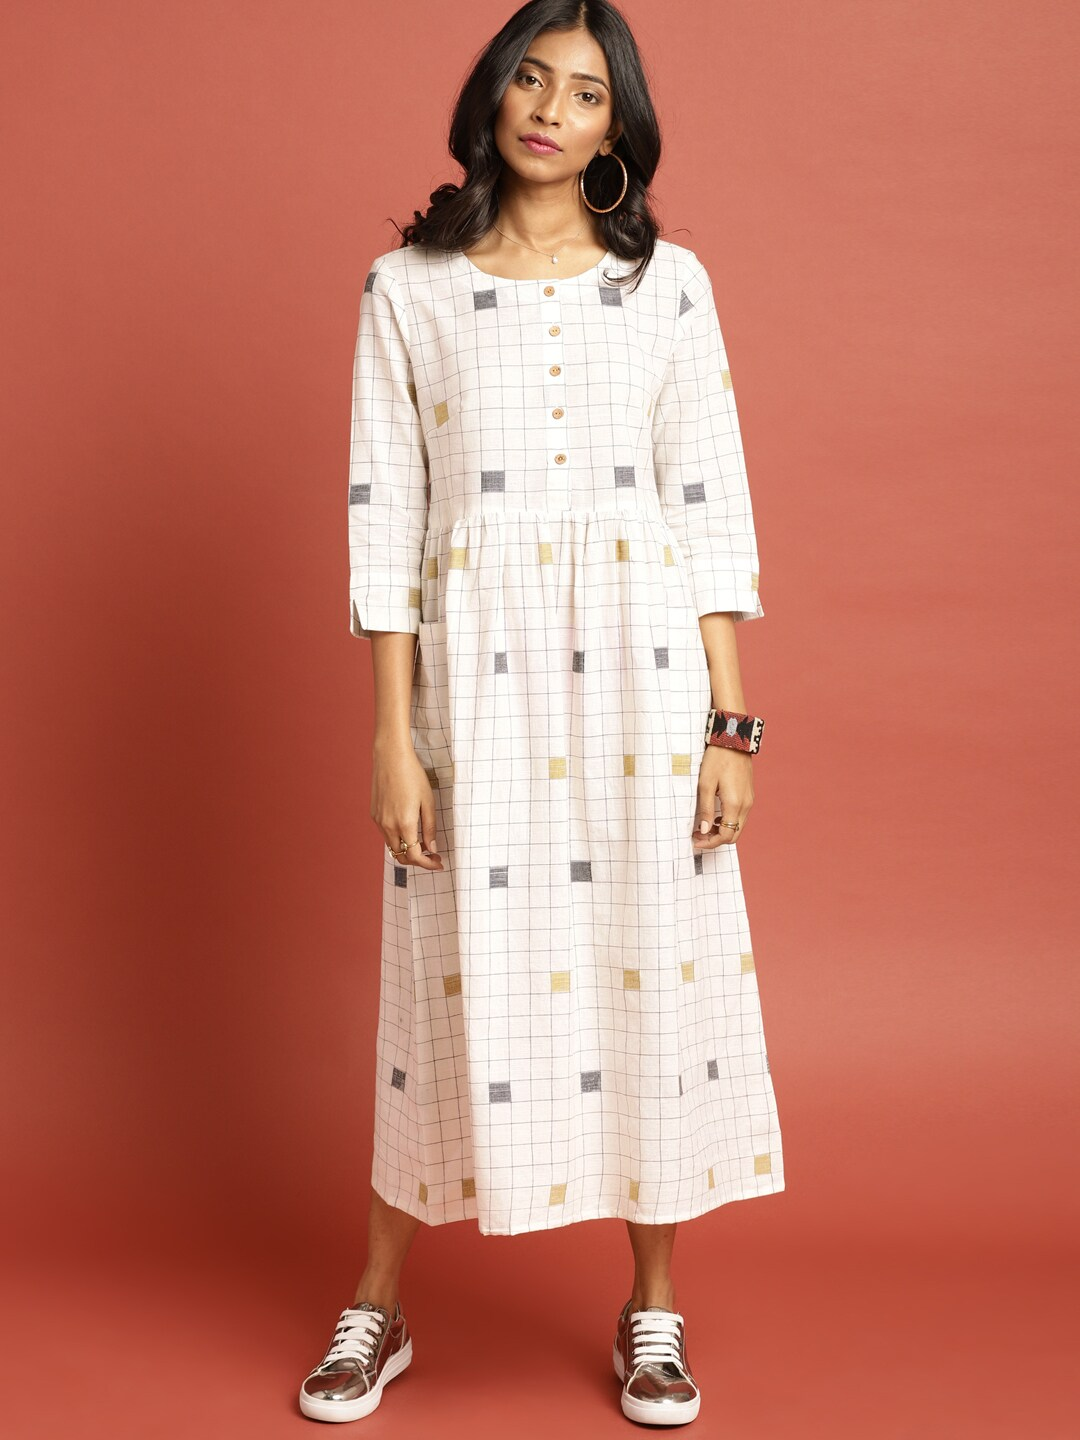 57611d09f12 White Black Checked Dresses - Buy White Black Checked Dresses online in  India